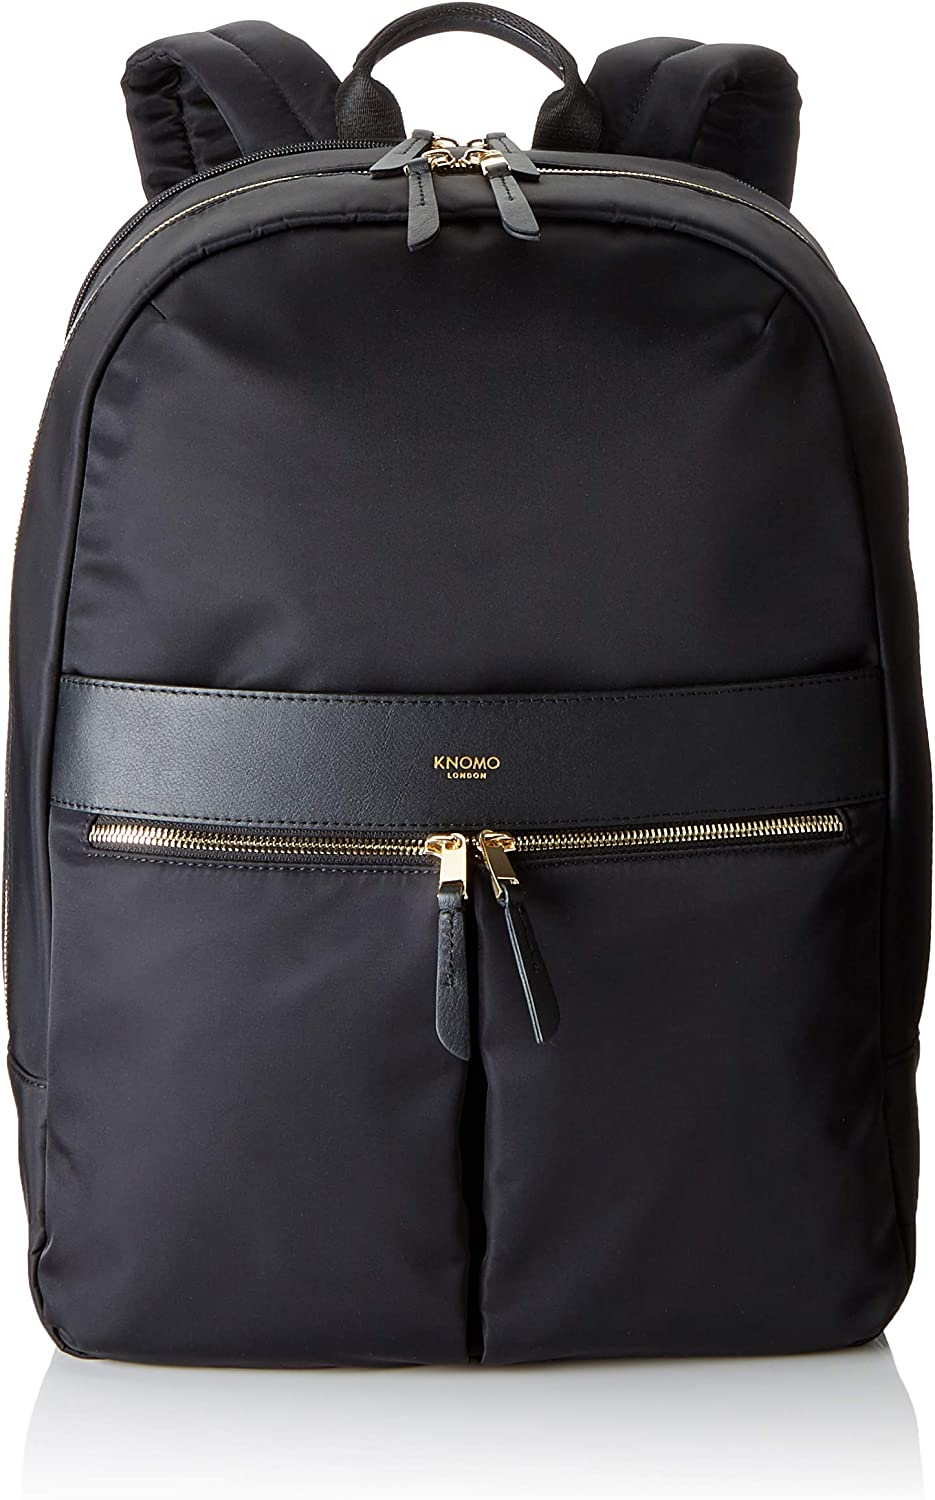 Knomo Luggage Women's Backpack, Black, One Size